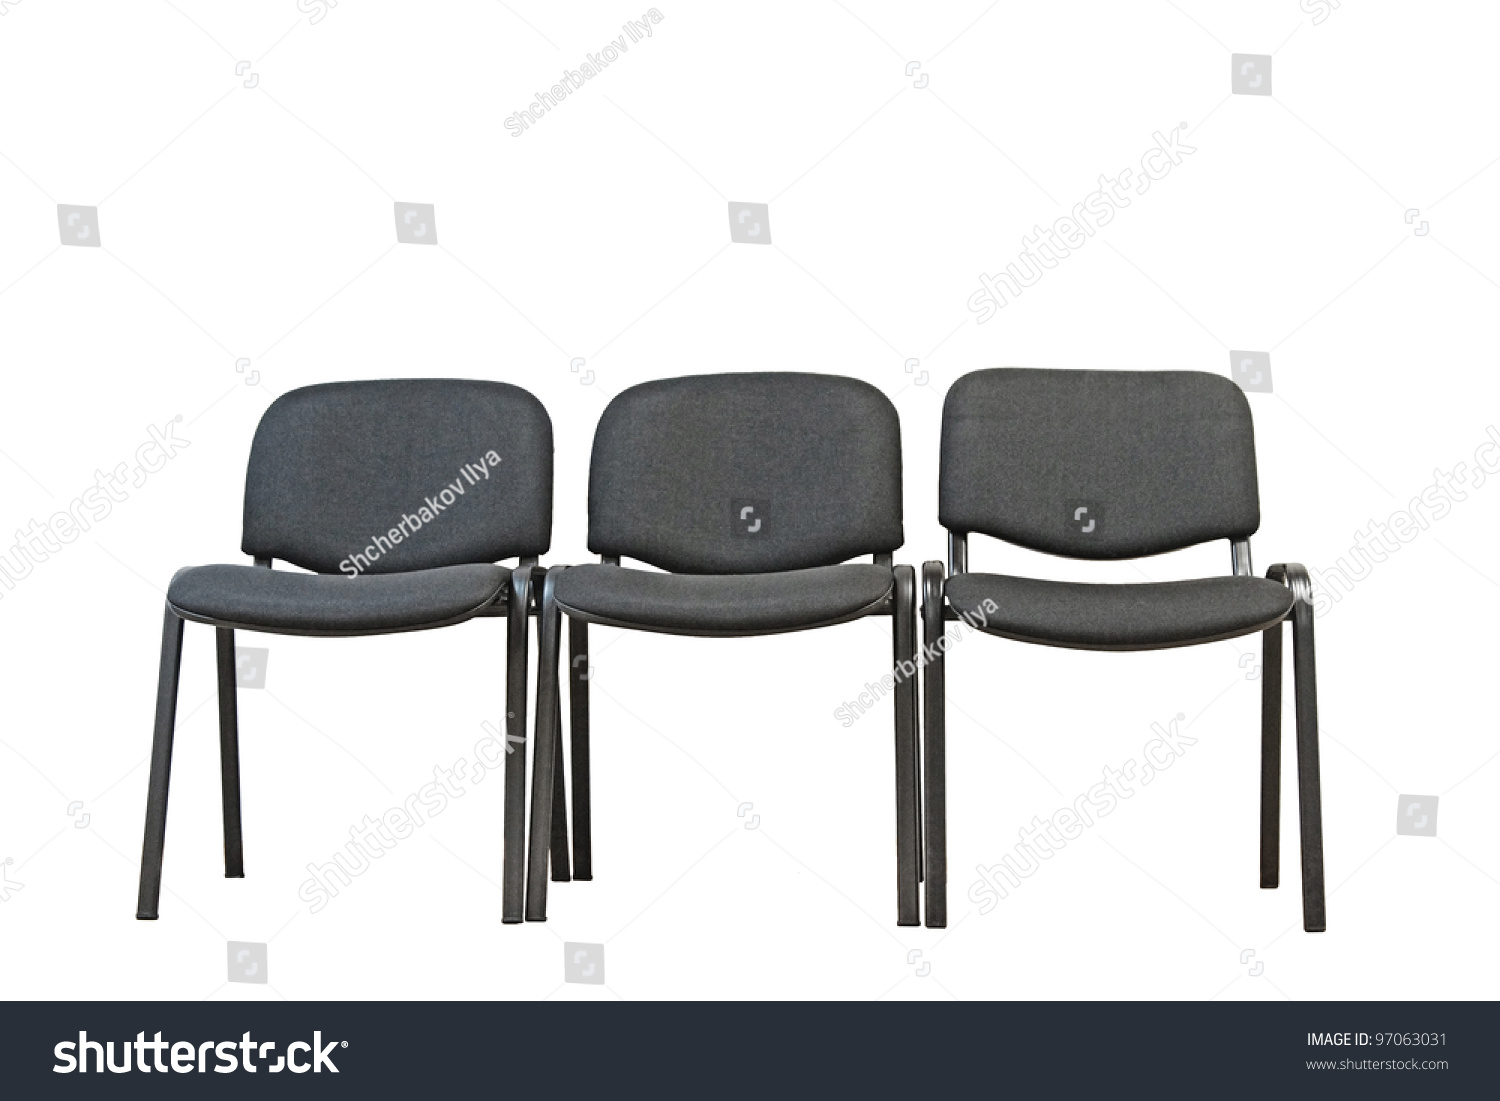 Unique Office Furniture Set Isolated On White Background Stock Photo Lastest Officefurniturewhitebackground56474141jpg